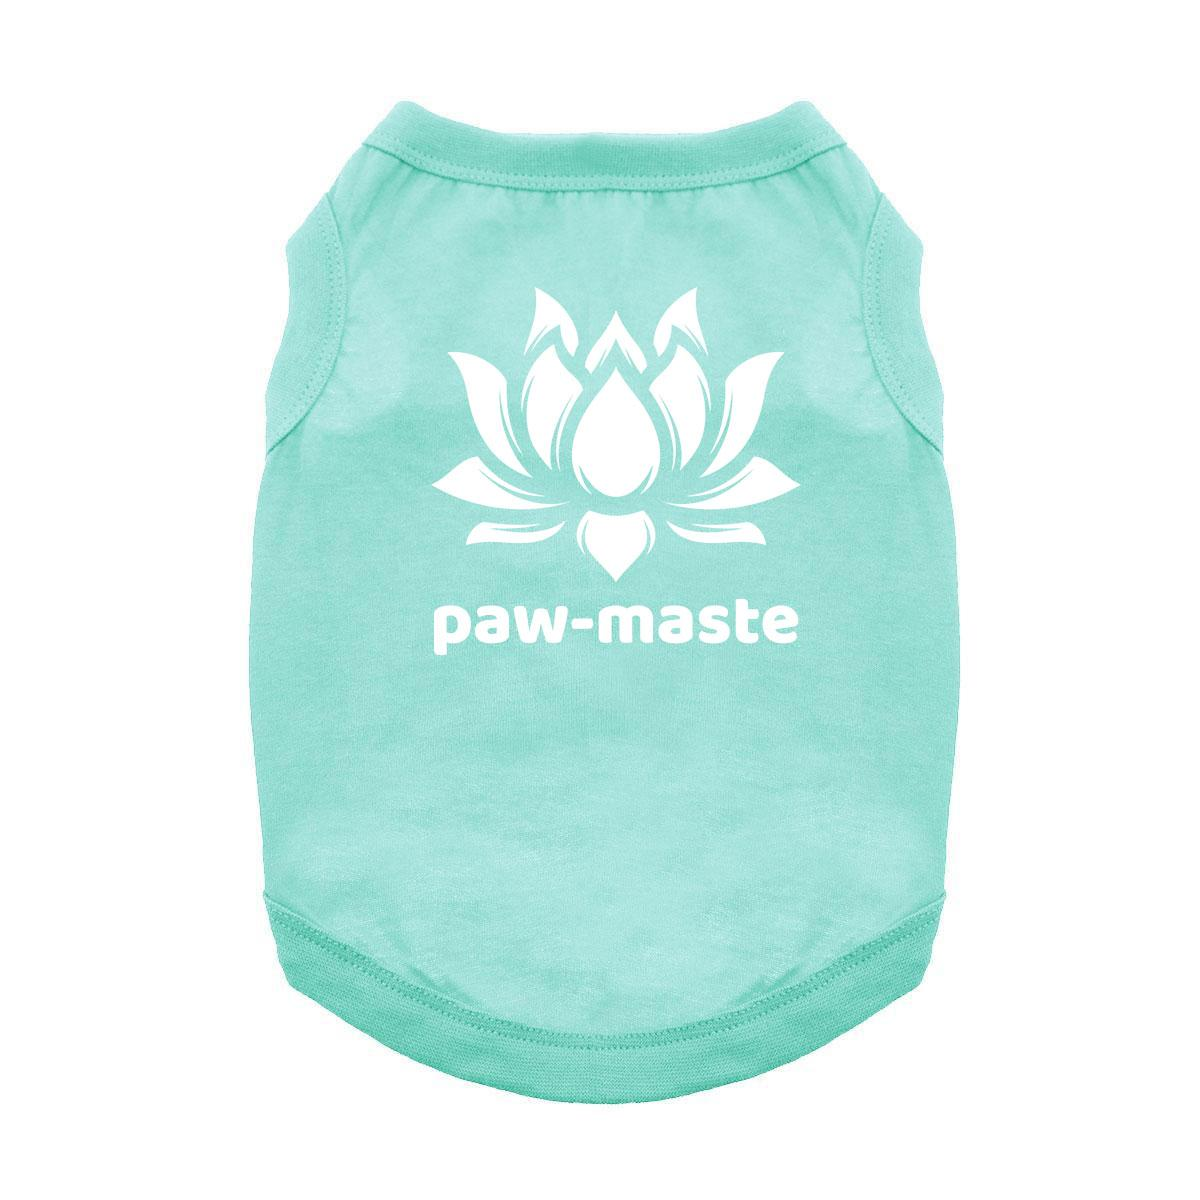 Paw-maste Dog Shirt - Aqua